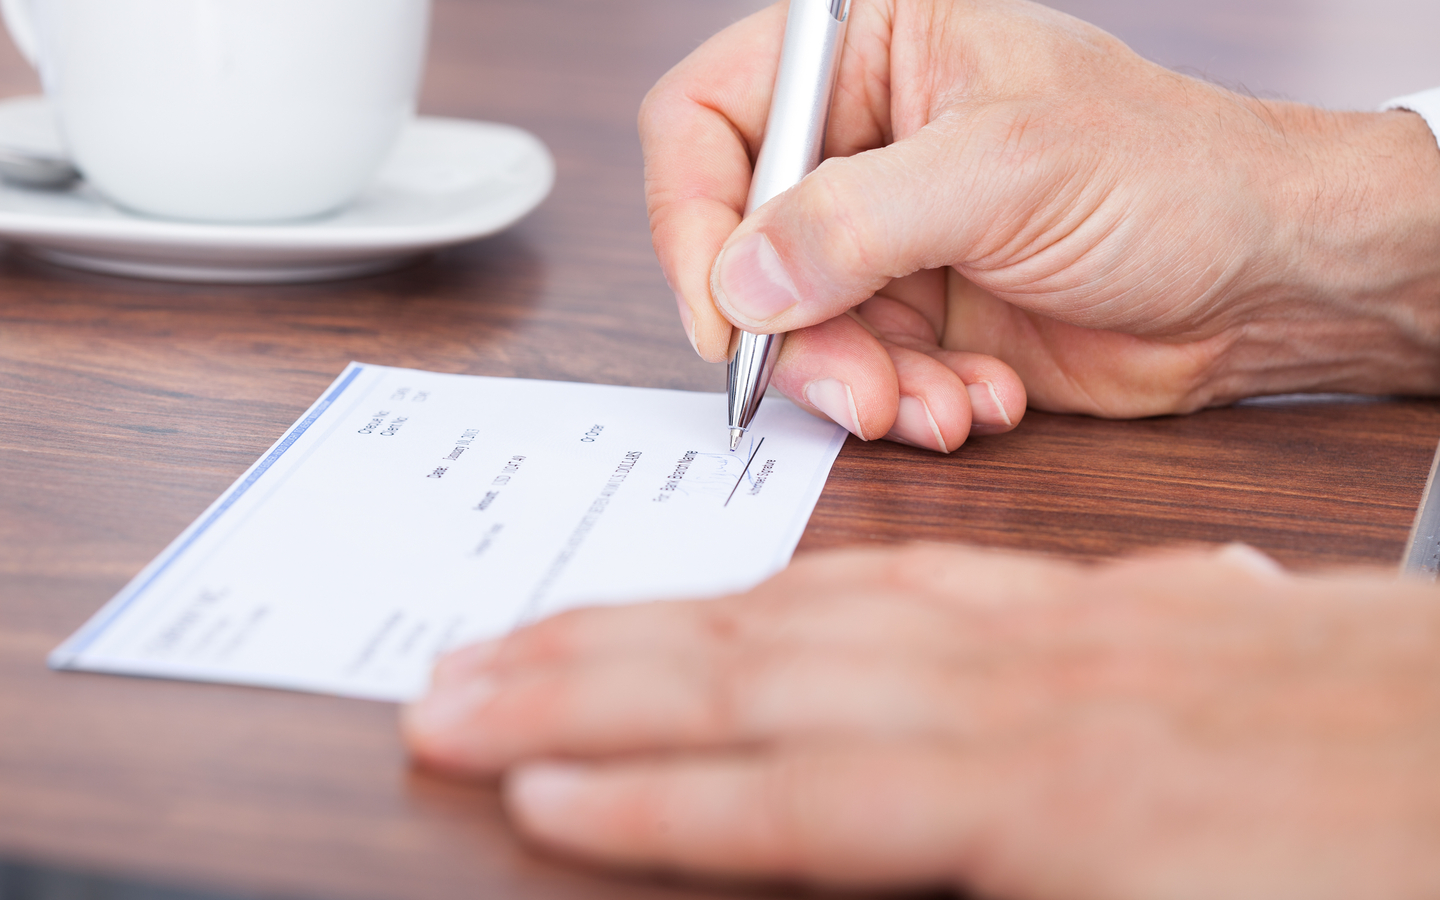 Single rent cheques are becoming more and more difficult